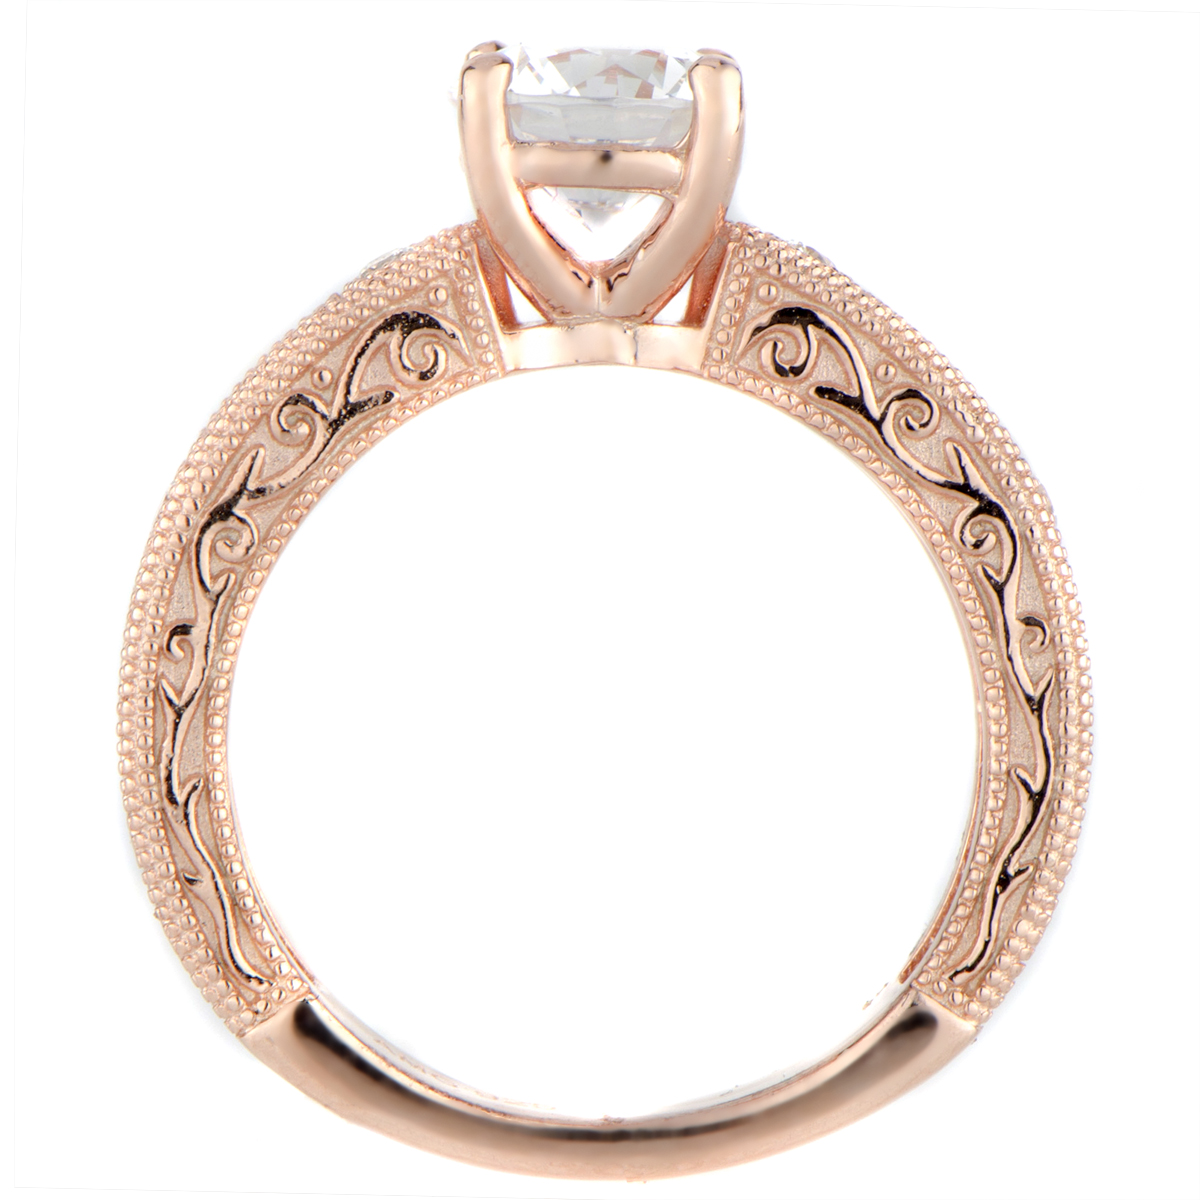 Maya's Round Cut Antique Style Rose Goldtone Engagement Ring